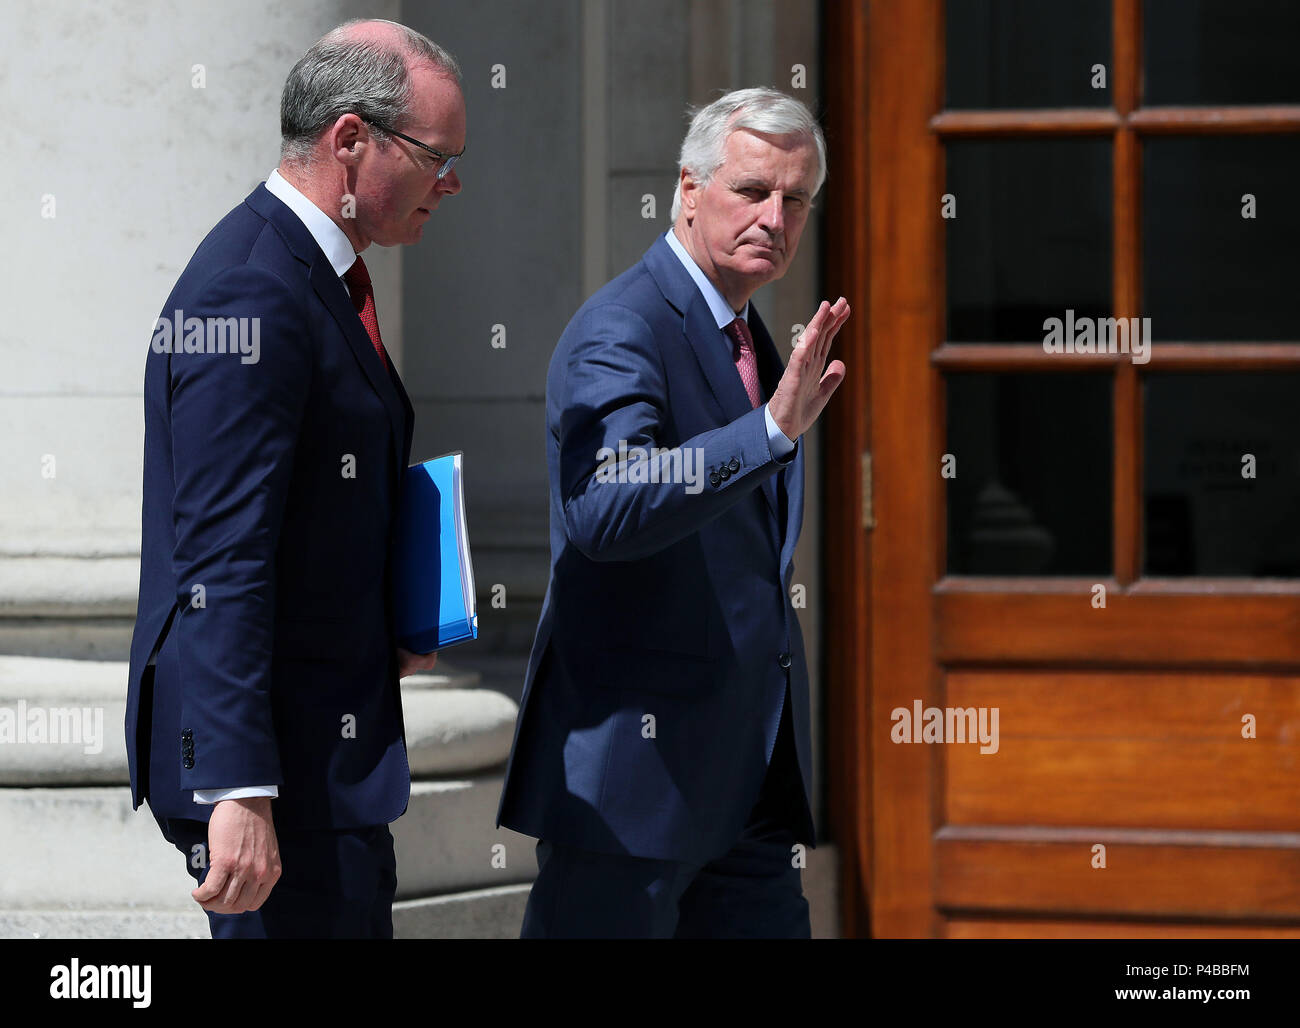 Michel Barnier, EU Chief Negotiator for Brexit, (right) with